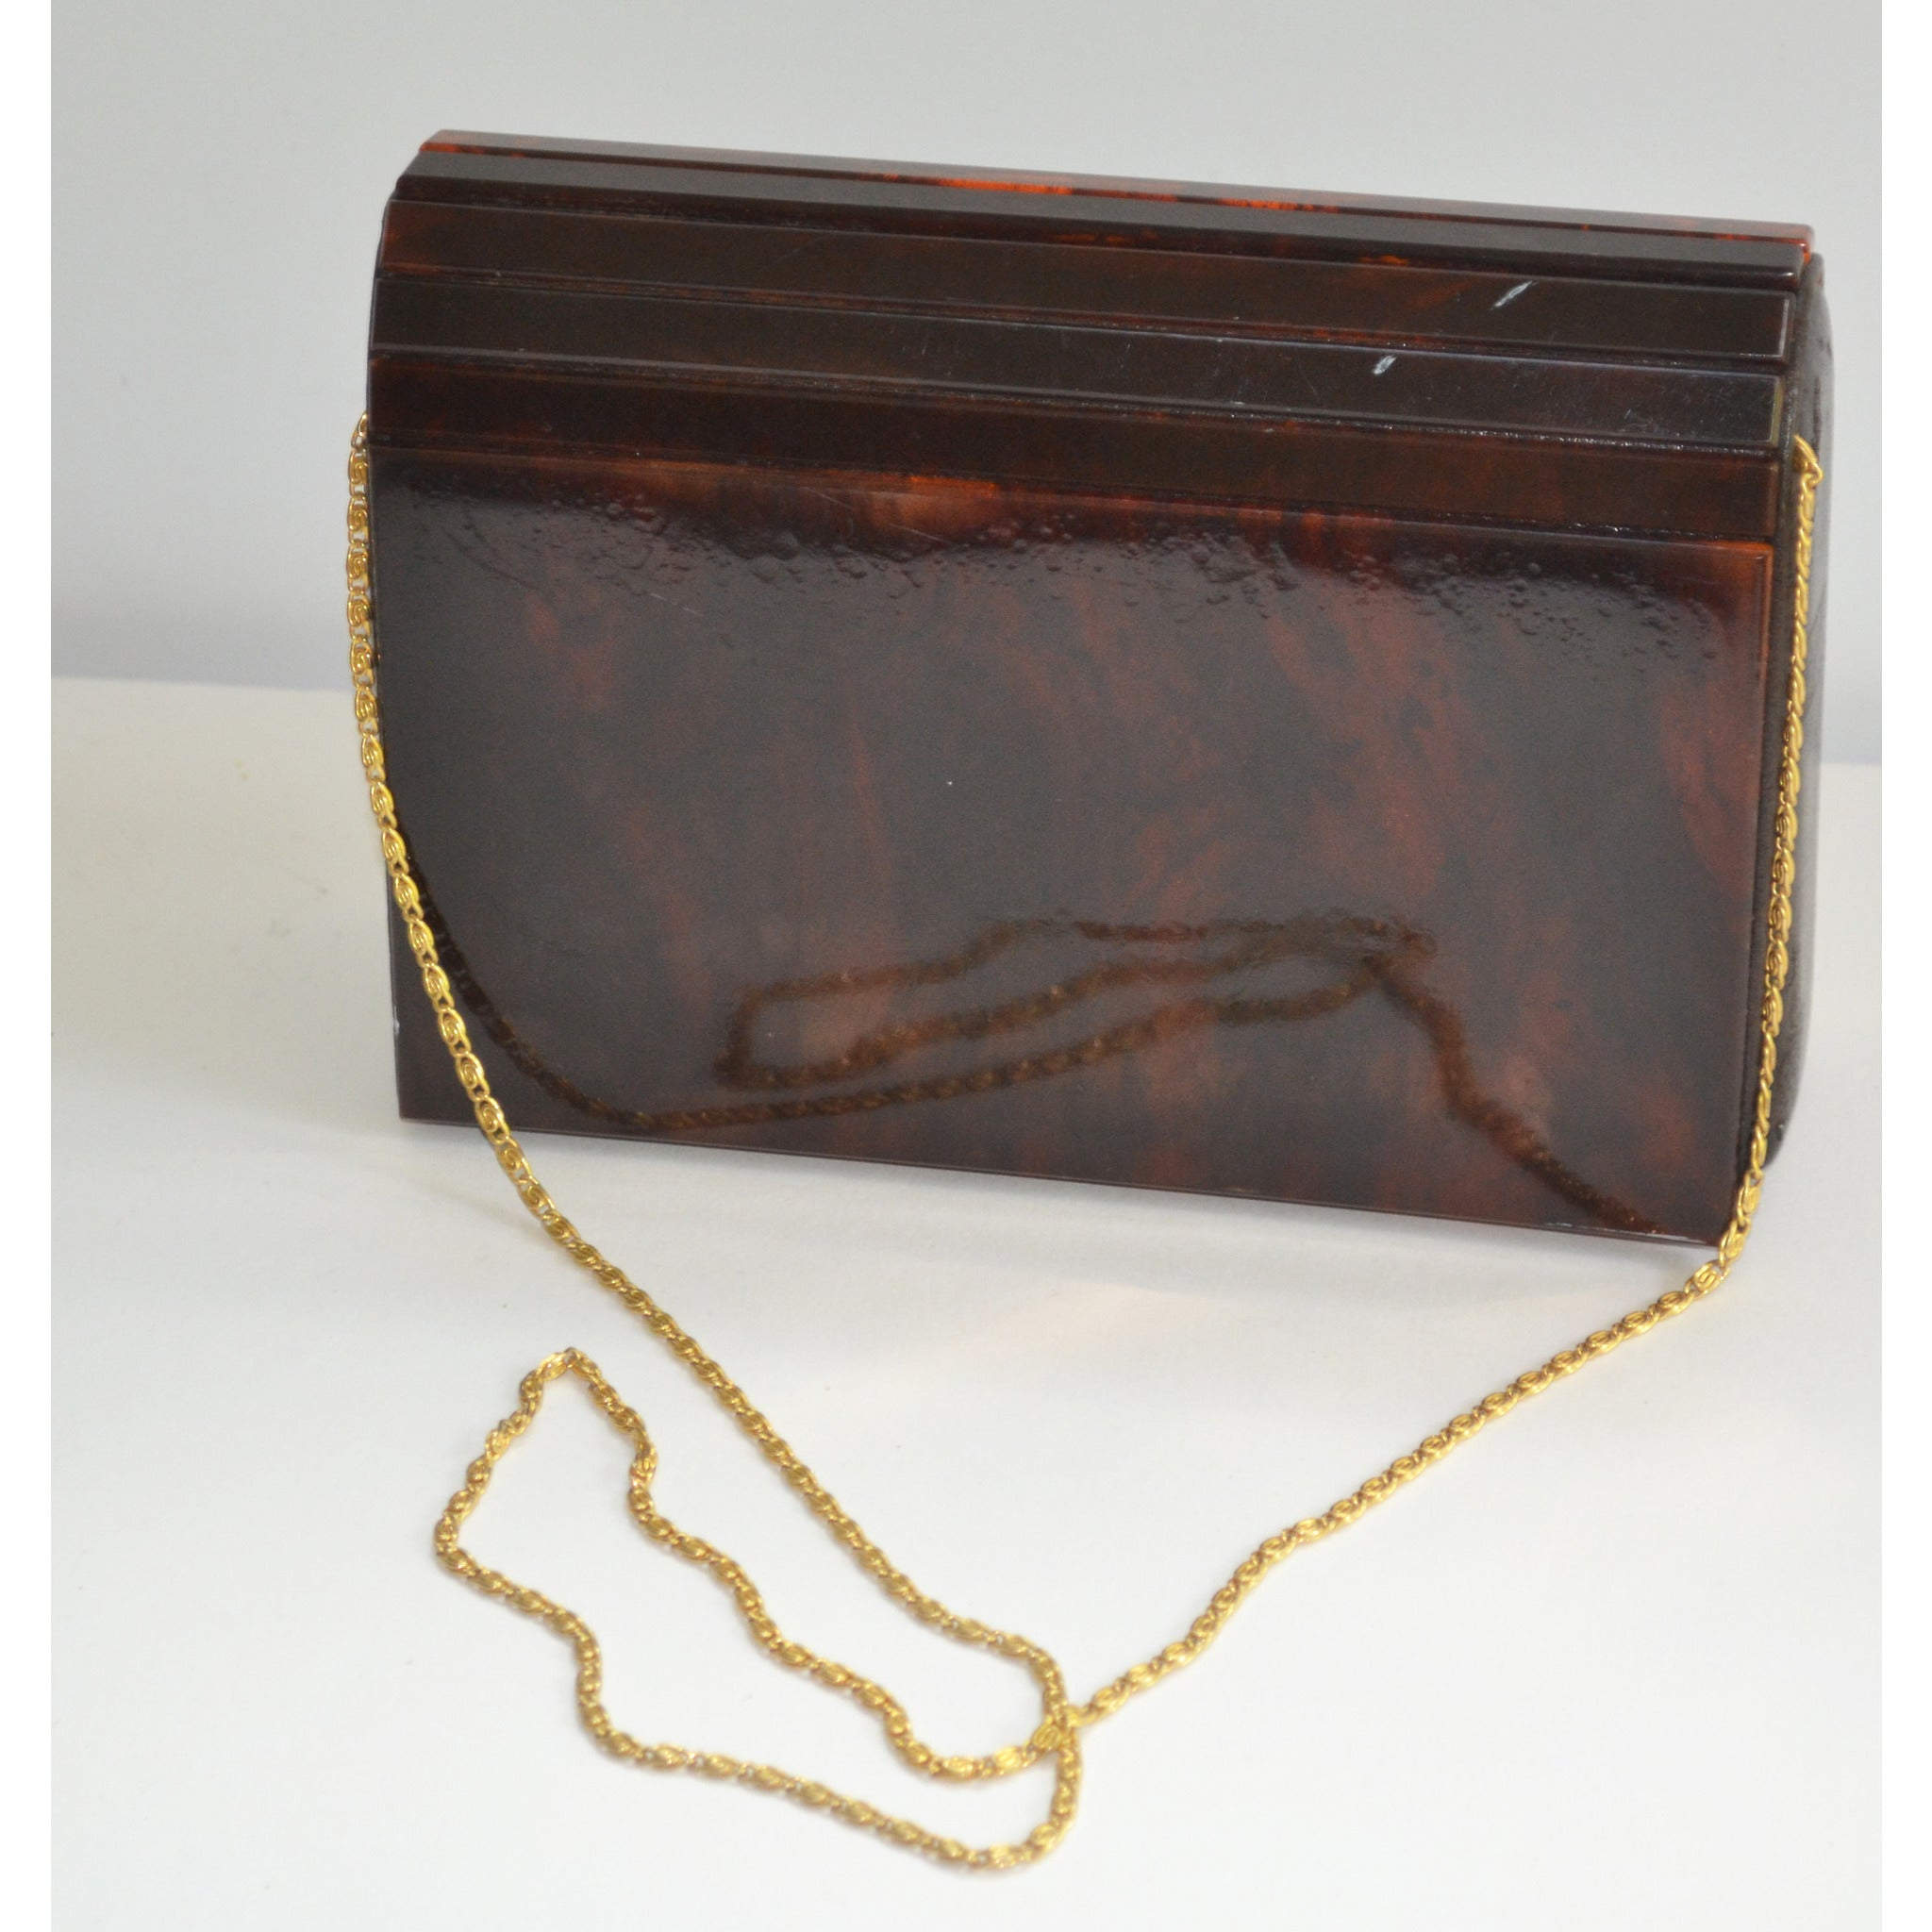 Vintage Brown Lucite Clutch Purse By Delill